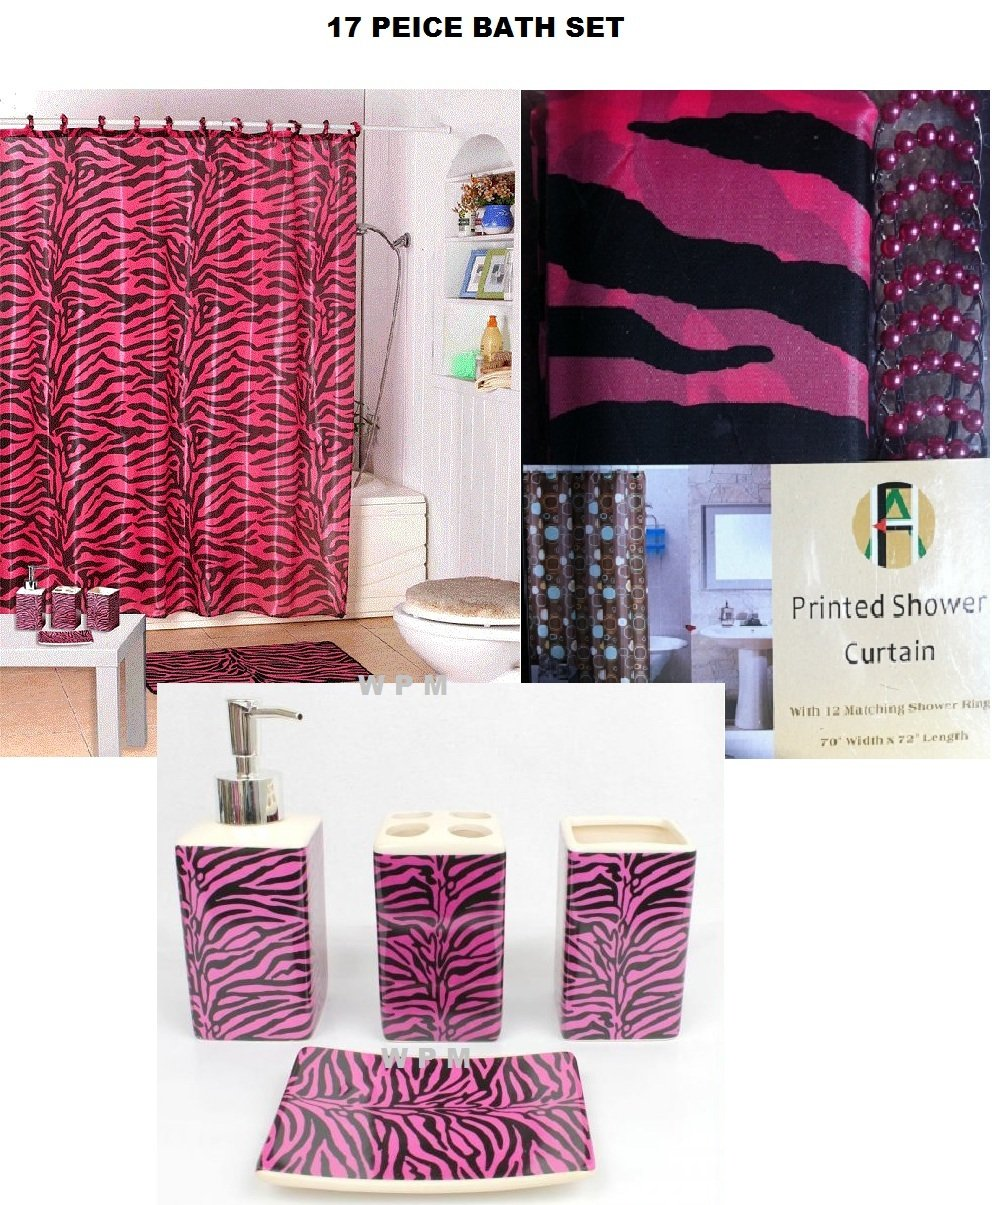 Purple cheetah print curtains - Purple Zebra Print Curtains 17 Piece Bath Accessory Set Pink Zebra Shower Curtain With Decorative